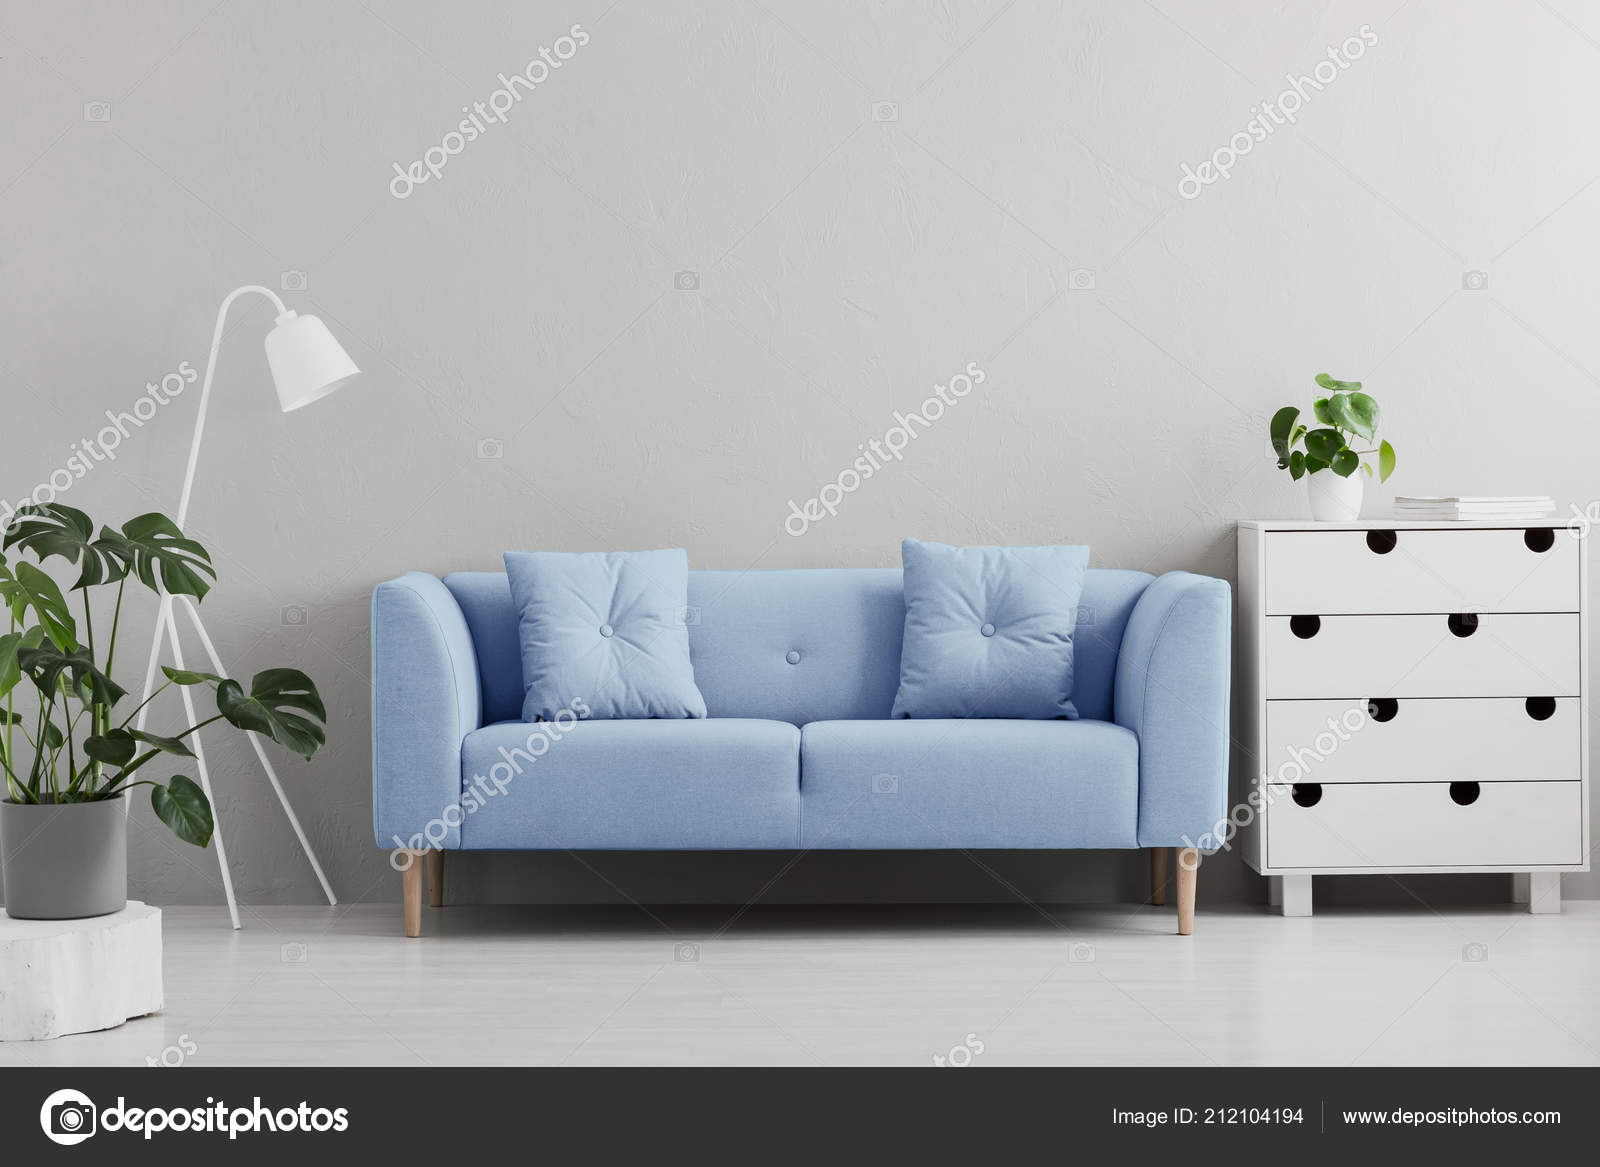 Grey White And Blue Living Room Blue Sofa White Lamp Cabinet Grey Living Room Interior Plants